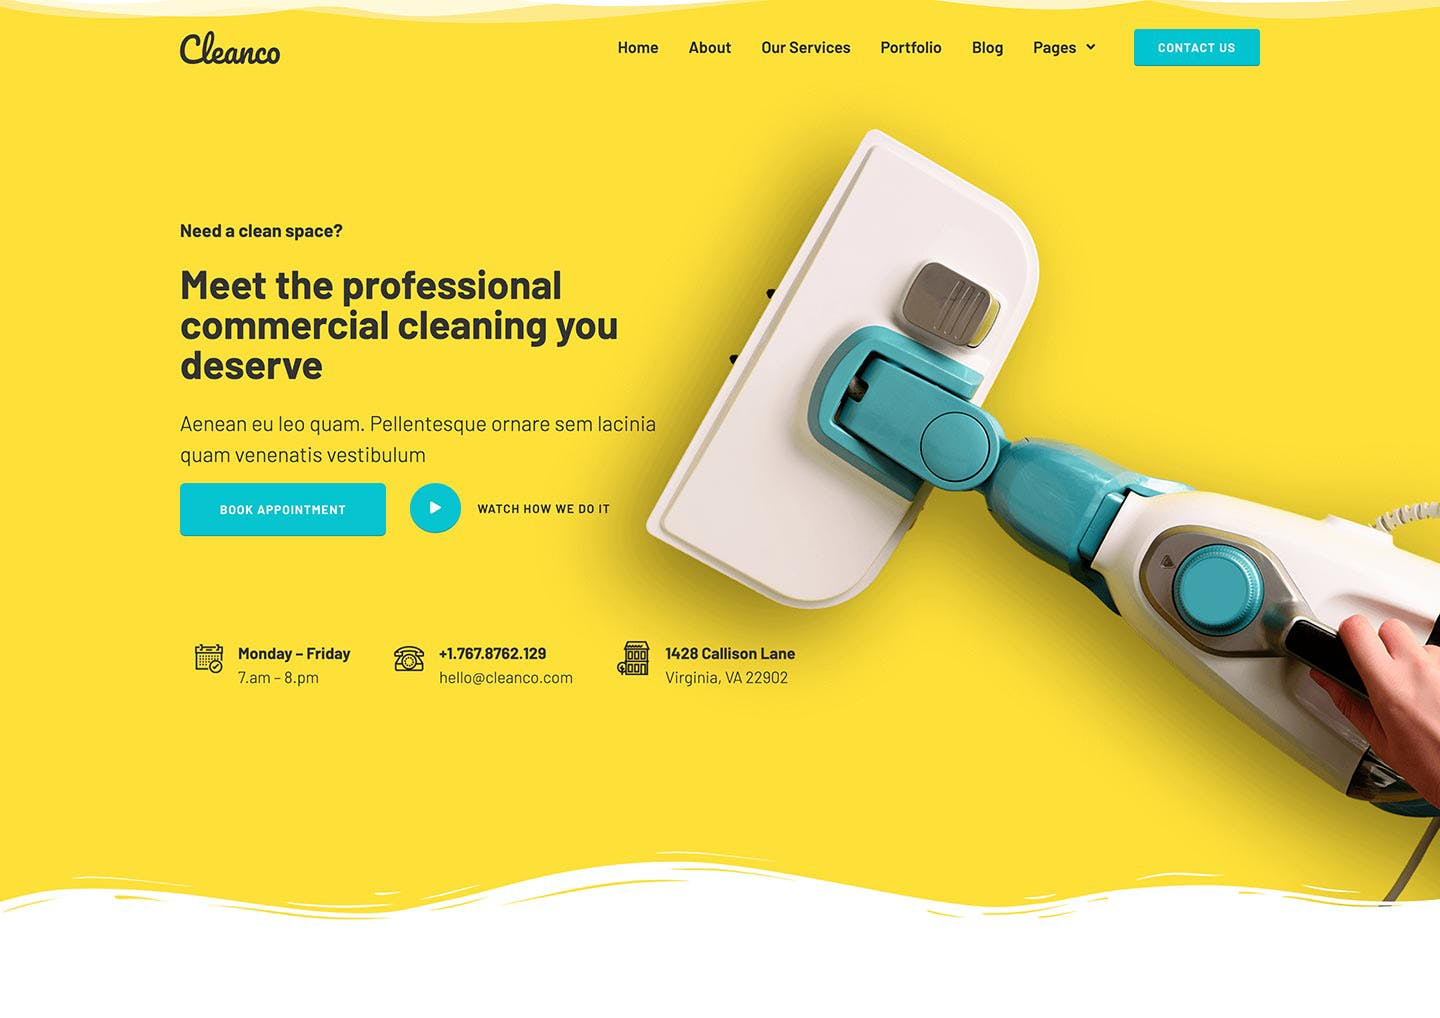 Cleanco - Cleaning Service Company Template Kit by deTheme on Envato Elements